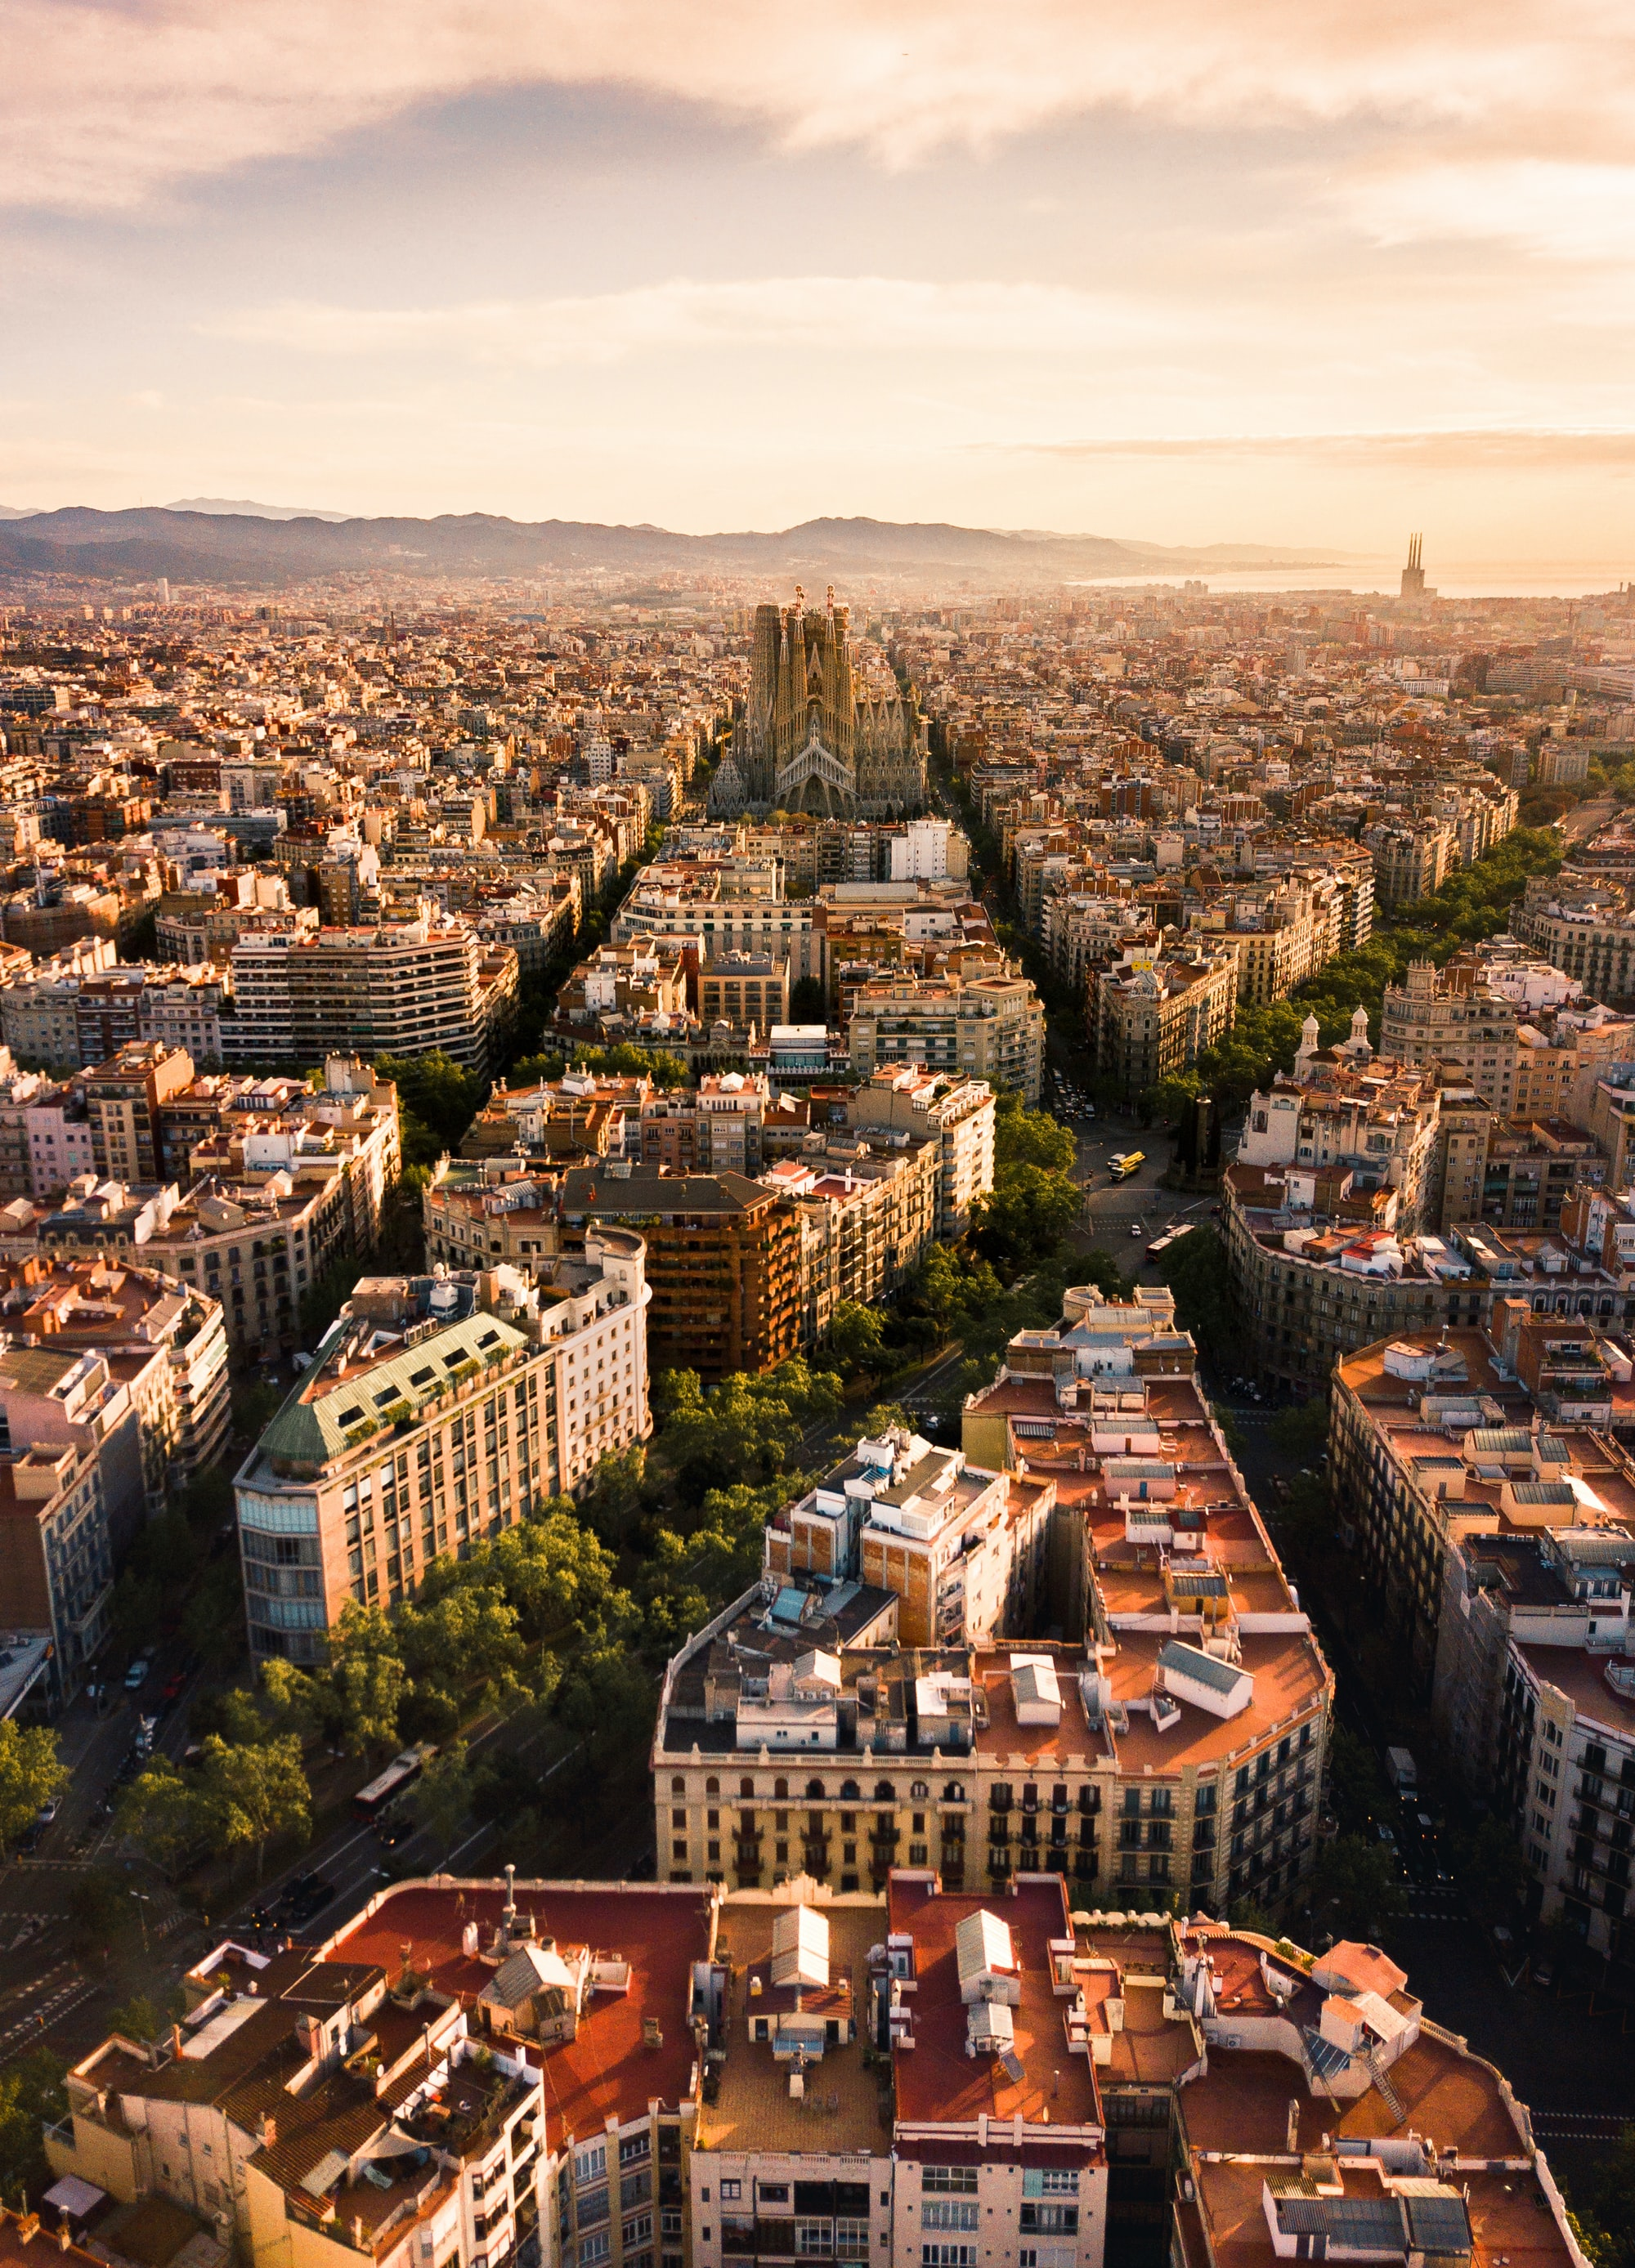 Barcelona at sunrise